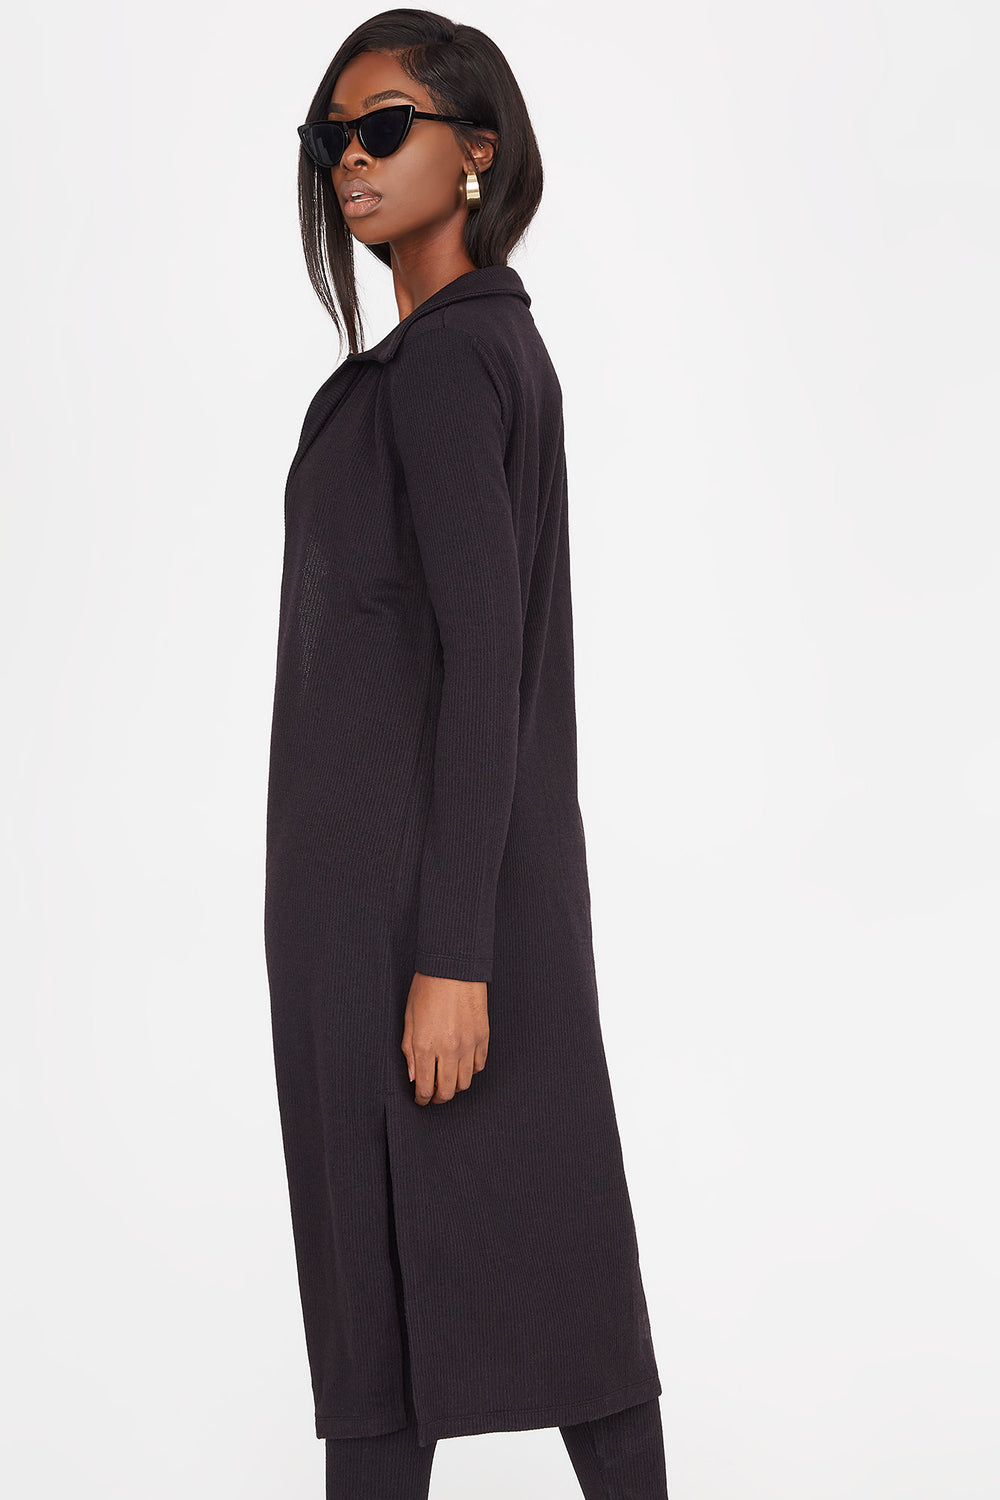 Knit Open Front Collared Longline Cardigan Black